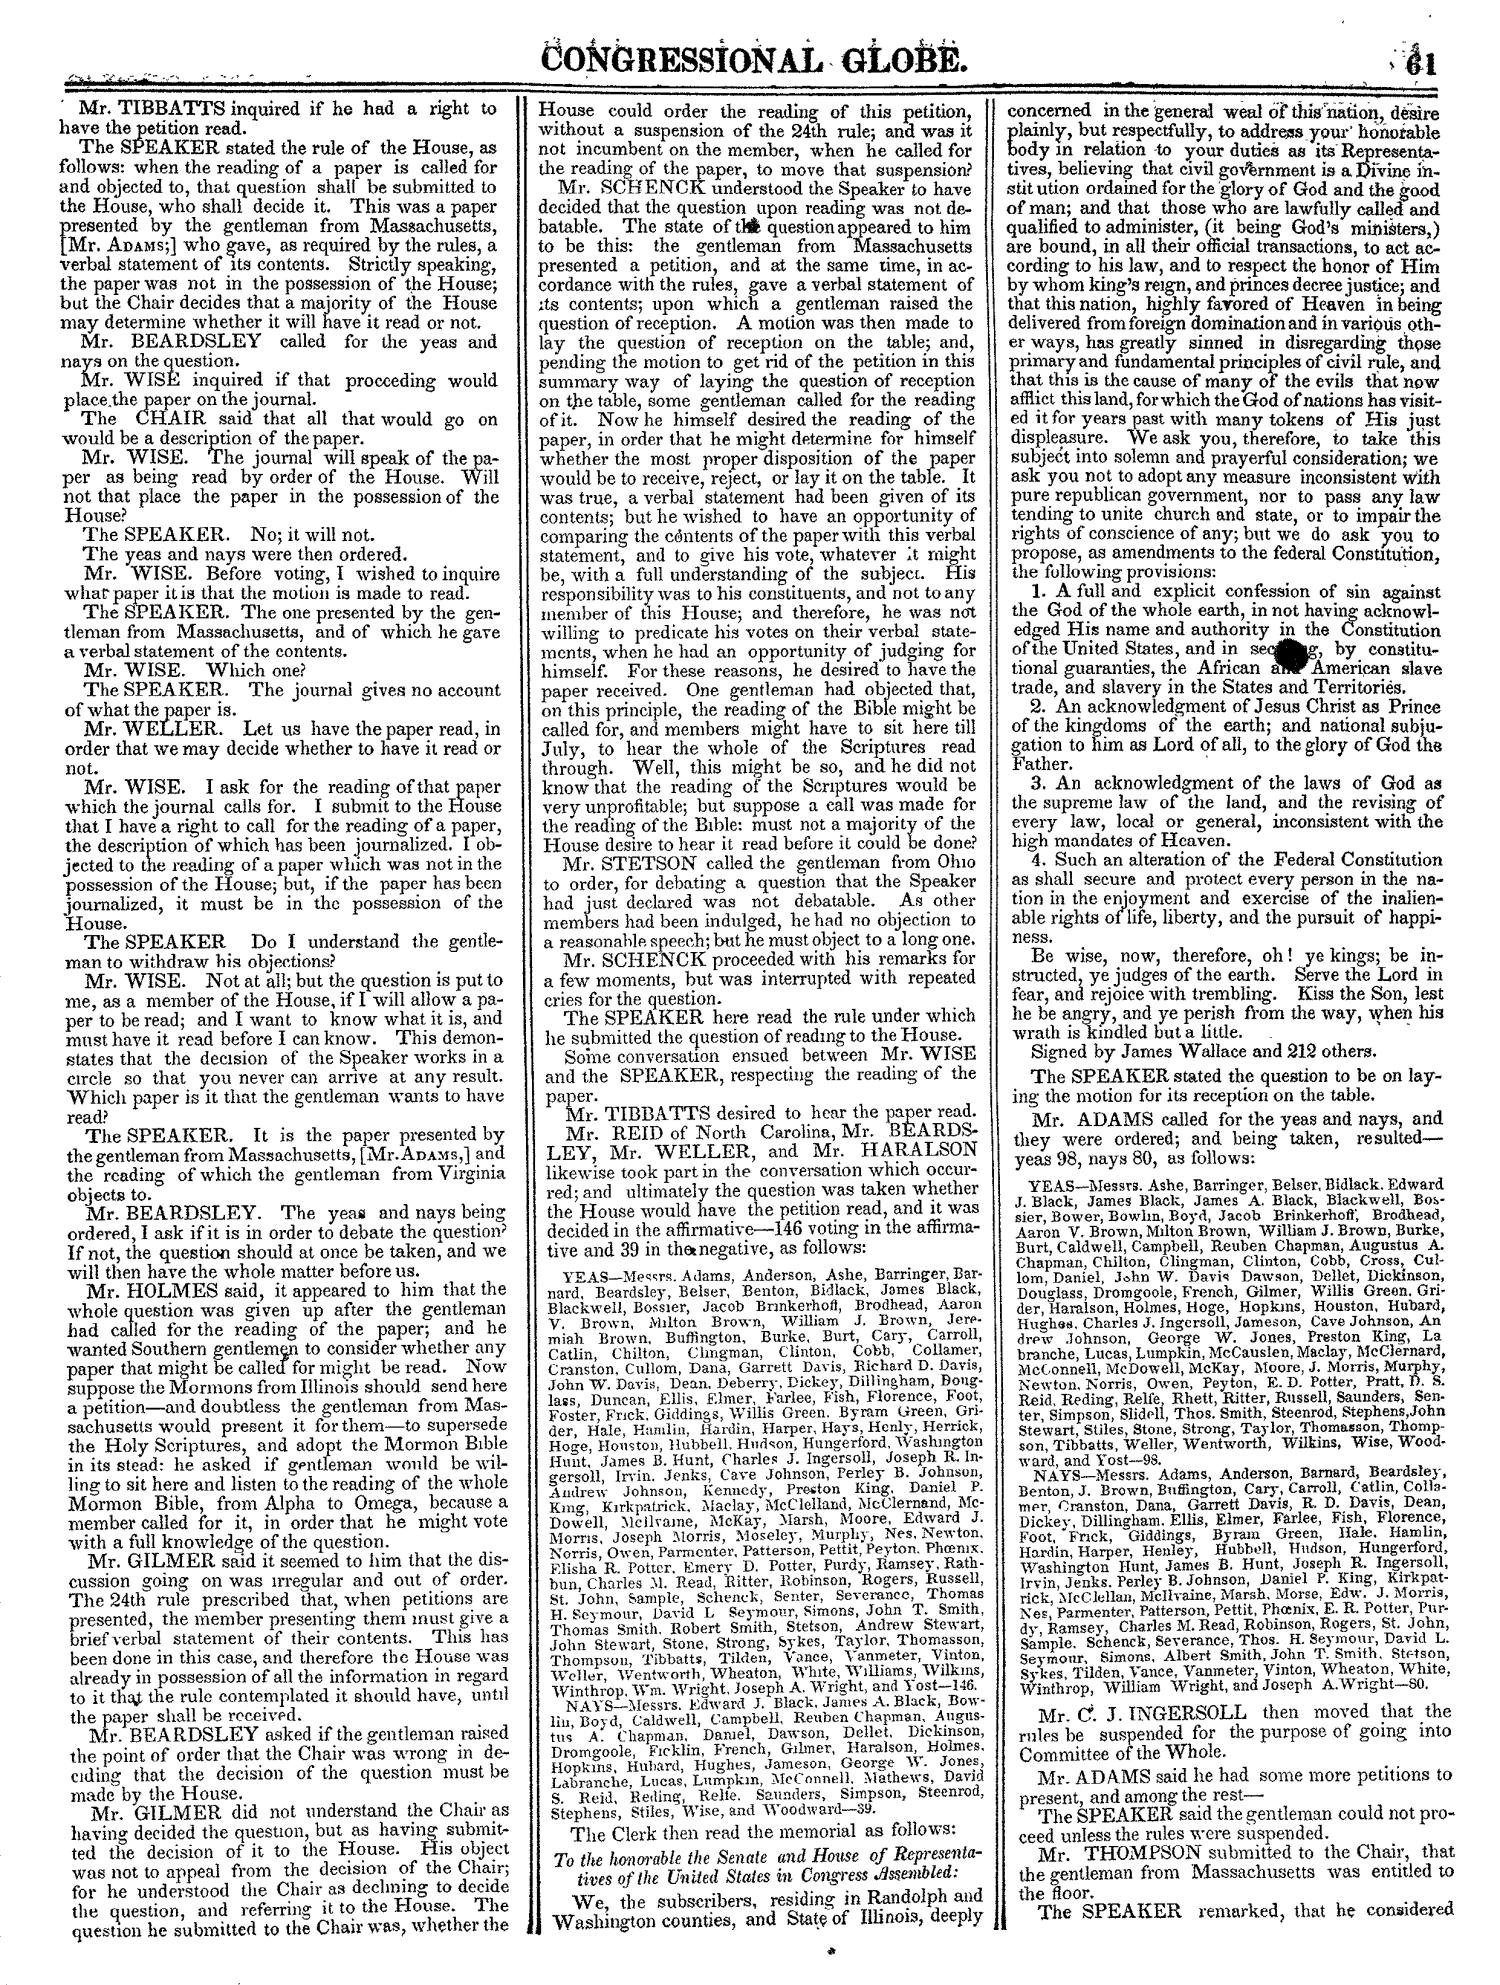 The Congressional Globe, Volume 13, Part 1: Twenty-Eighth Congress, First Session                                                                                                      61